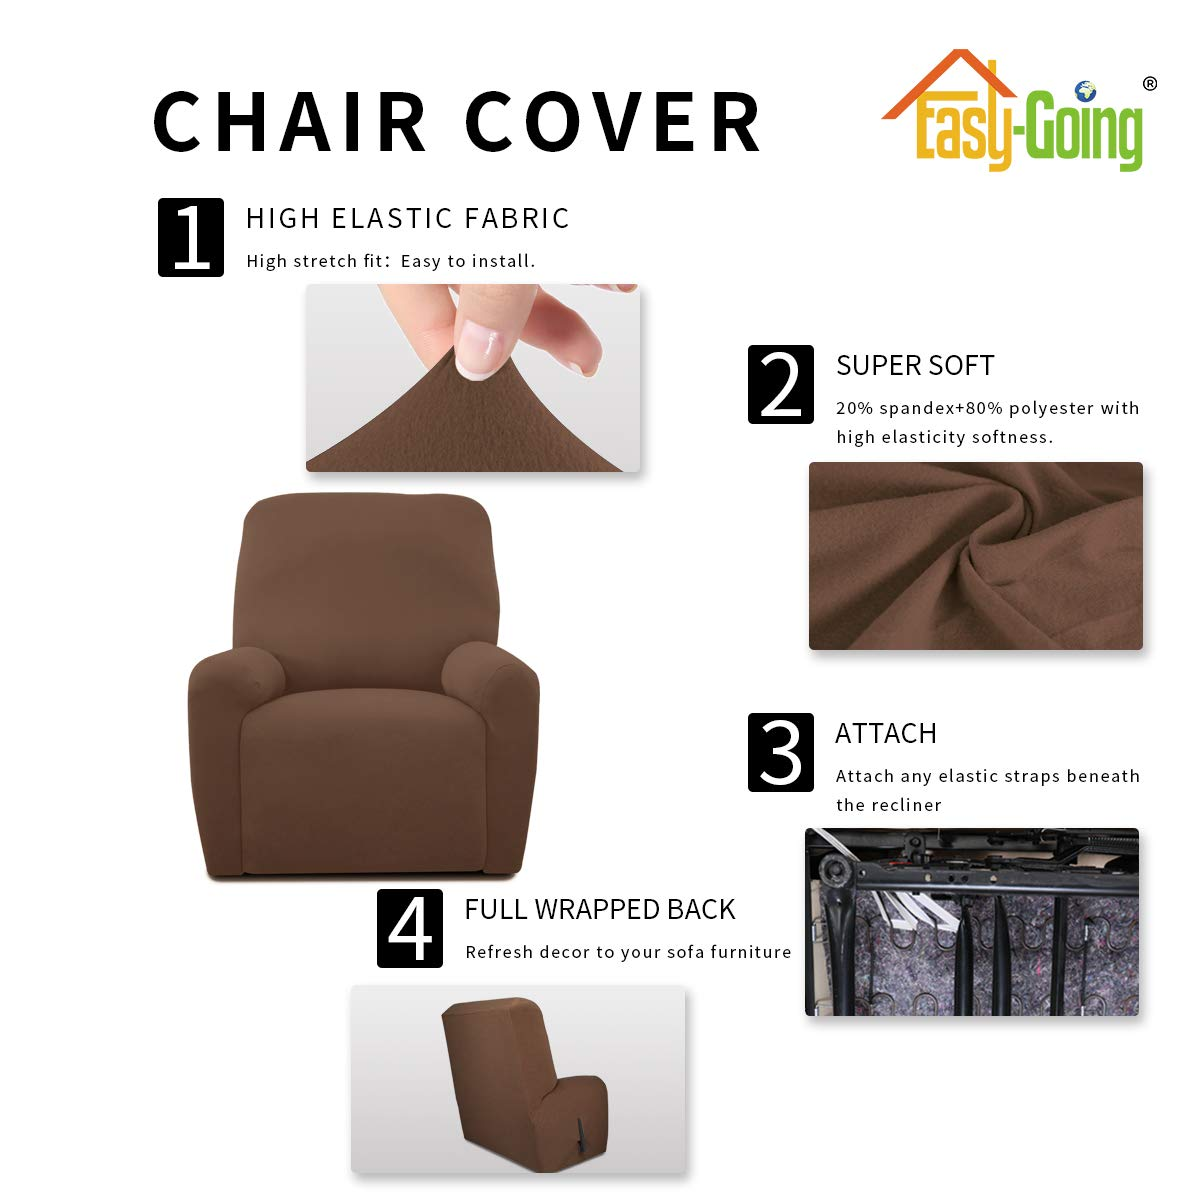 Recliner, Light Gray Spandex Soft Fitted Sofa Couch Cover Easy-Going 4 Pieces Microfiber Stretch Recliner Slipcover Washable Furniture Protector with Elastic Bottom for Kids,Pet